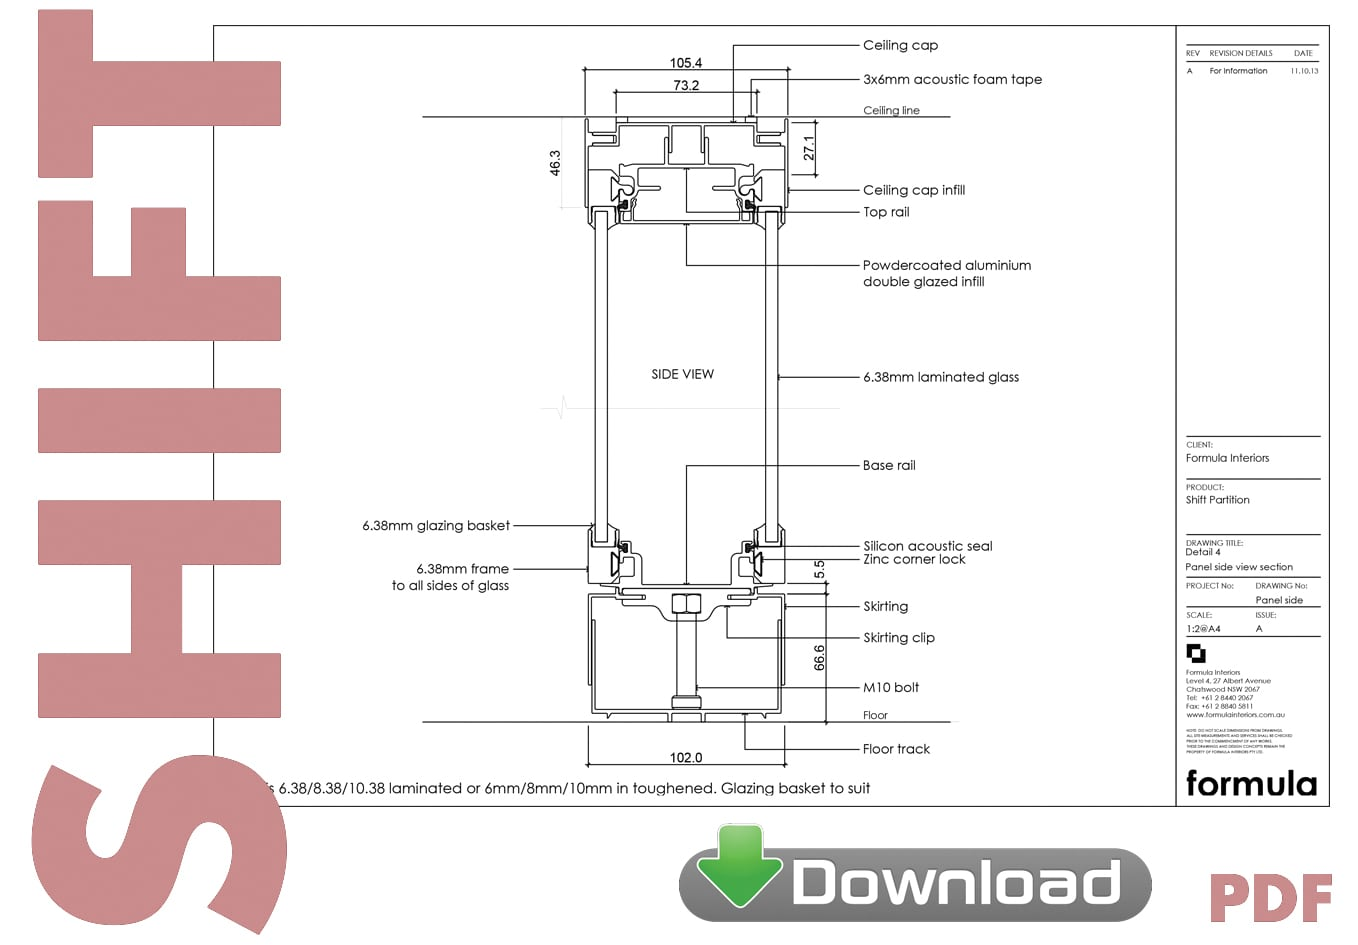 Shift Partition System drawings pdf download - Formula Interiors